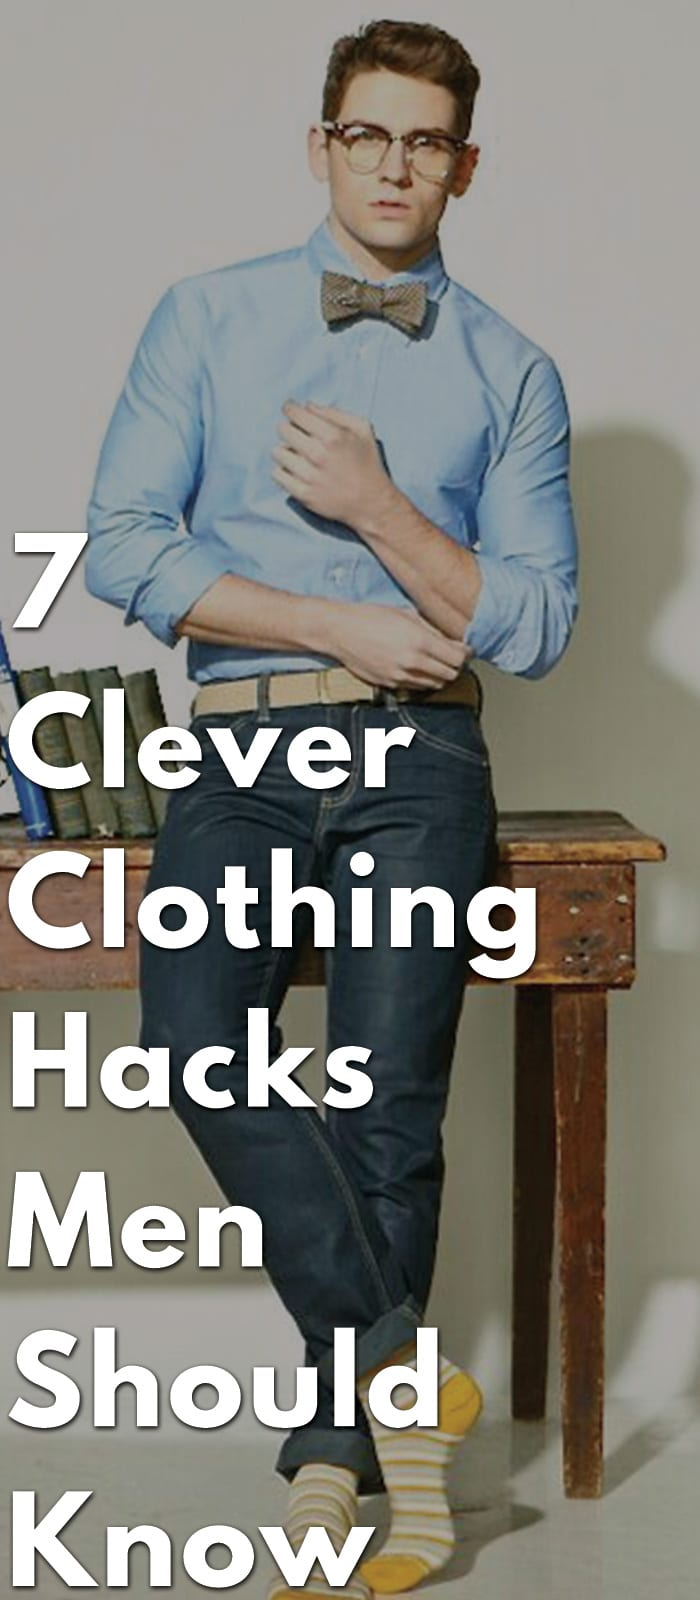 7-Clever-Clothing-Hacks-Men-Should-Know..